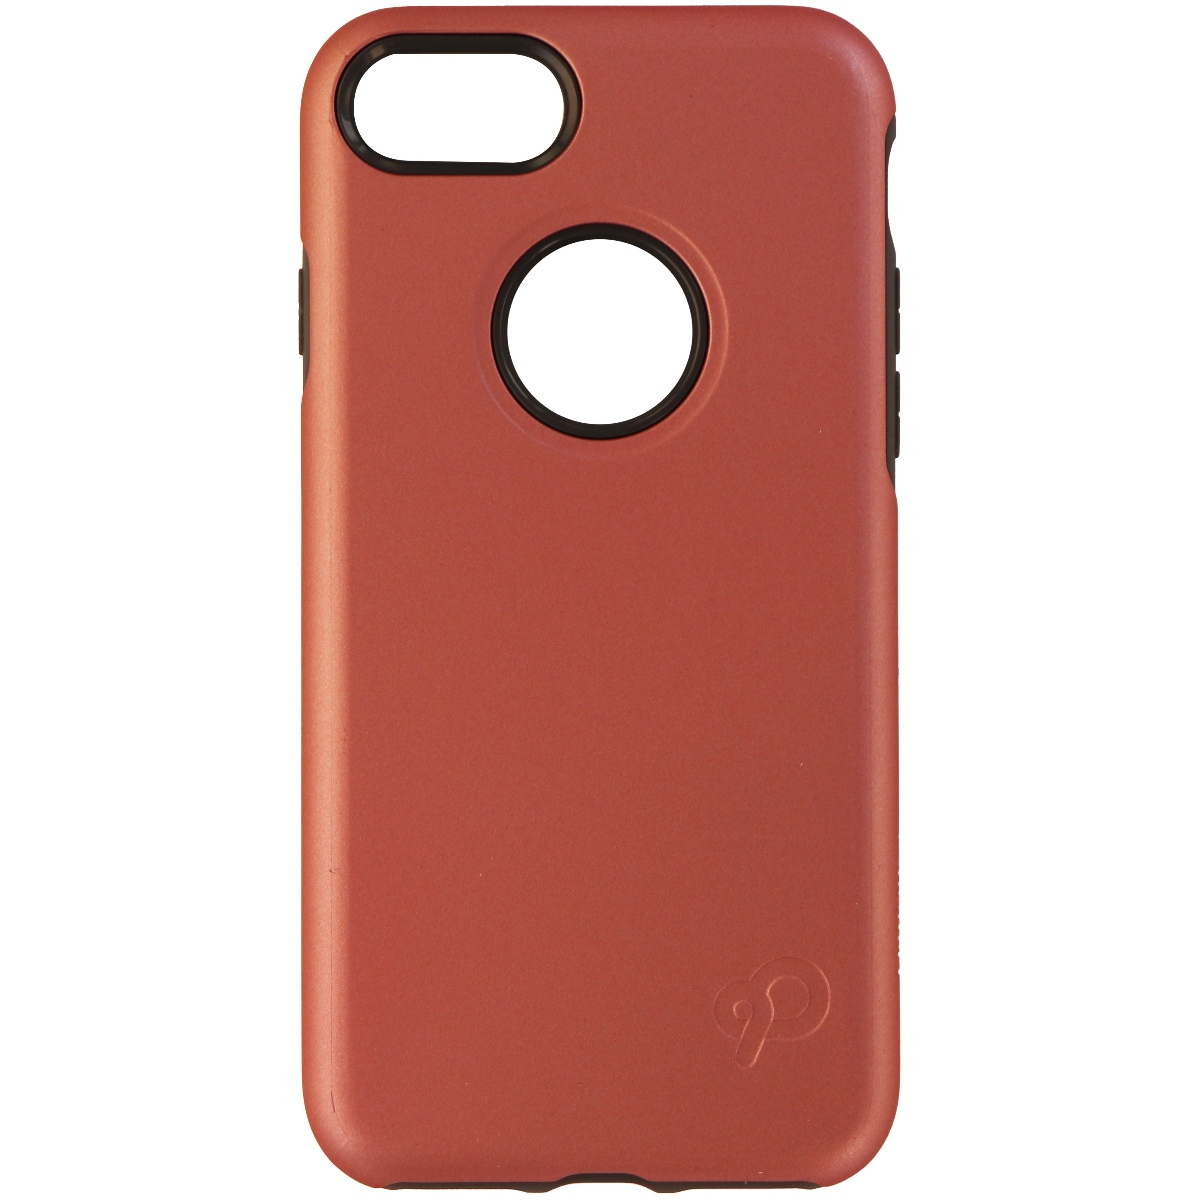 Nimbus9 Cirrus Series Protective Case Cover for iPhone 8 7 - Pink / Gray